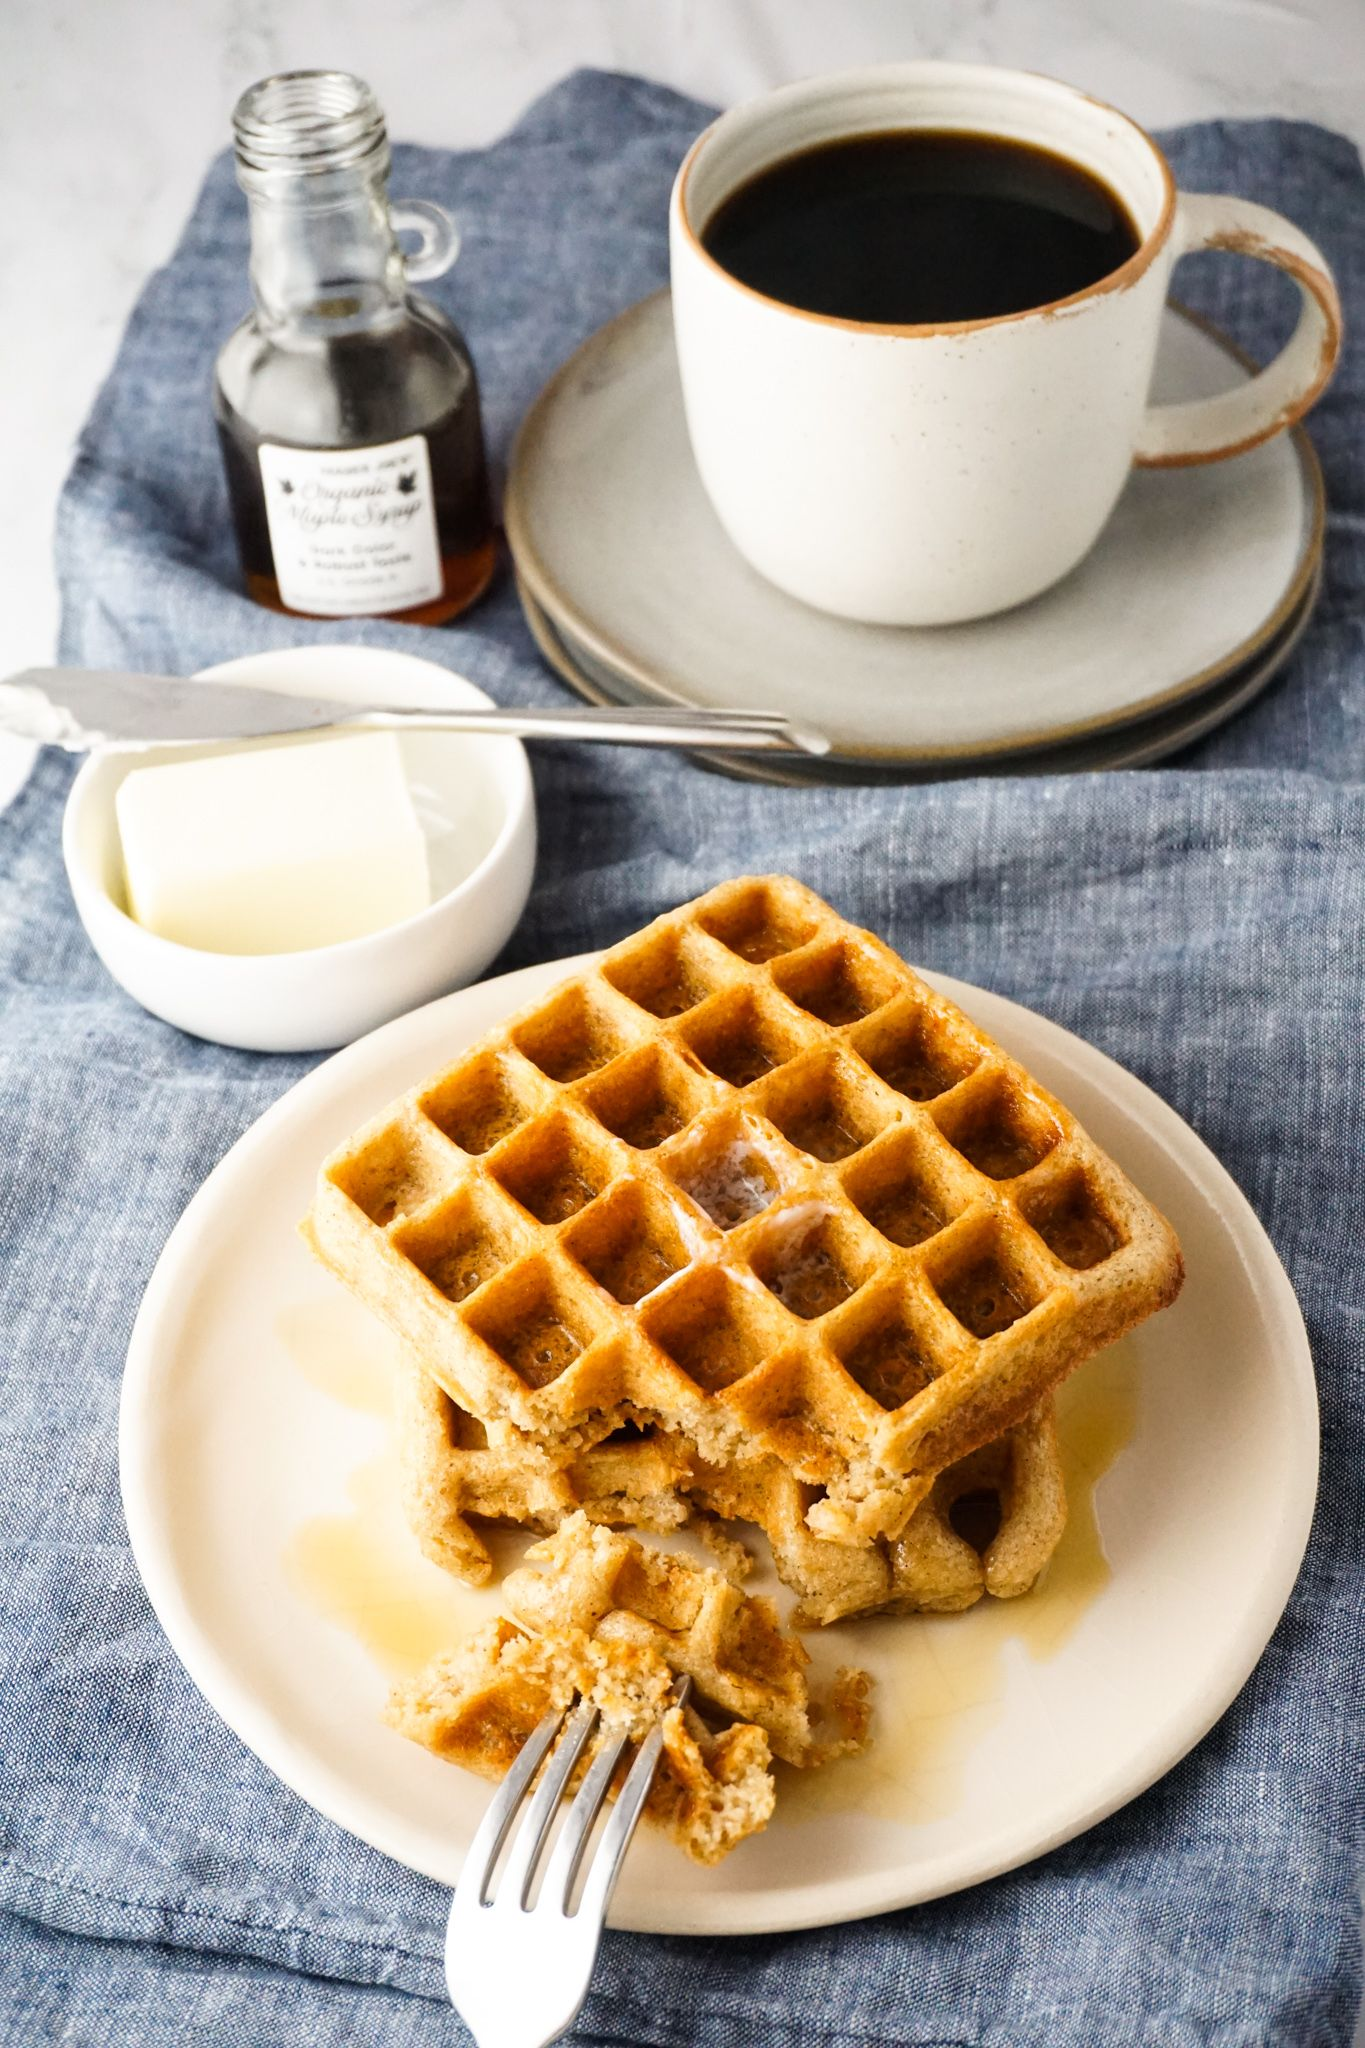 Classic Whole Wheat Buttermilk Waffles Hungry Haley In 2020 Buttermilk Waffles Waffles Whole Wheat Waffles